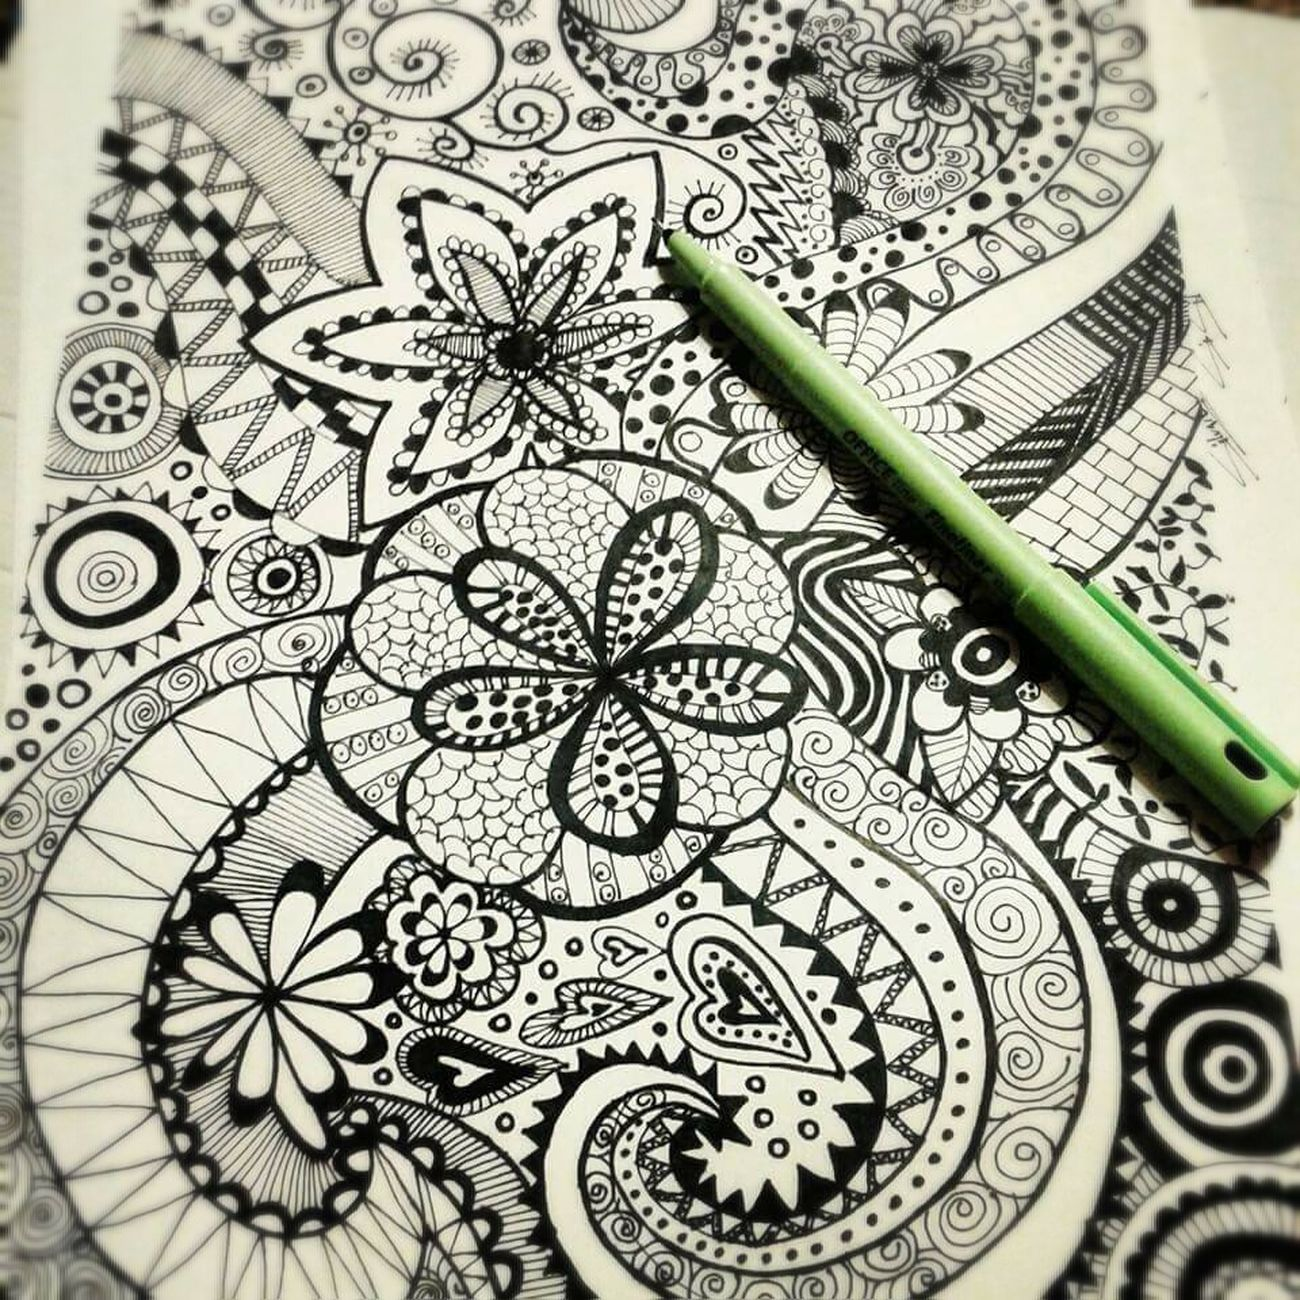 No People Zentangles Ink EyeEm Vision Ilustration Dibujo Dibujoamano Handmade For You